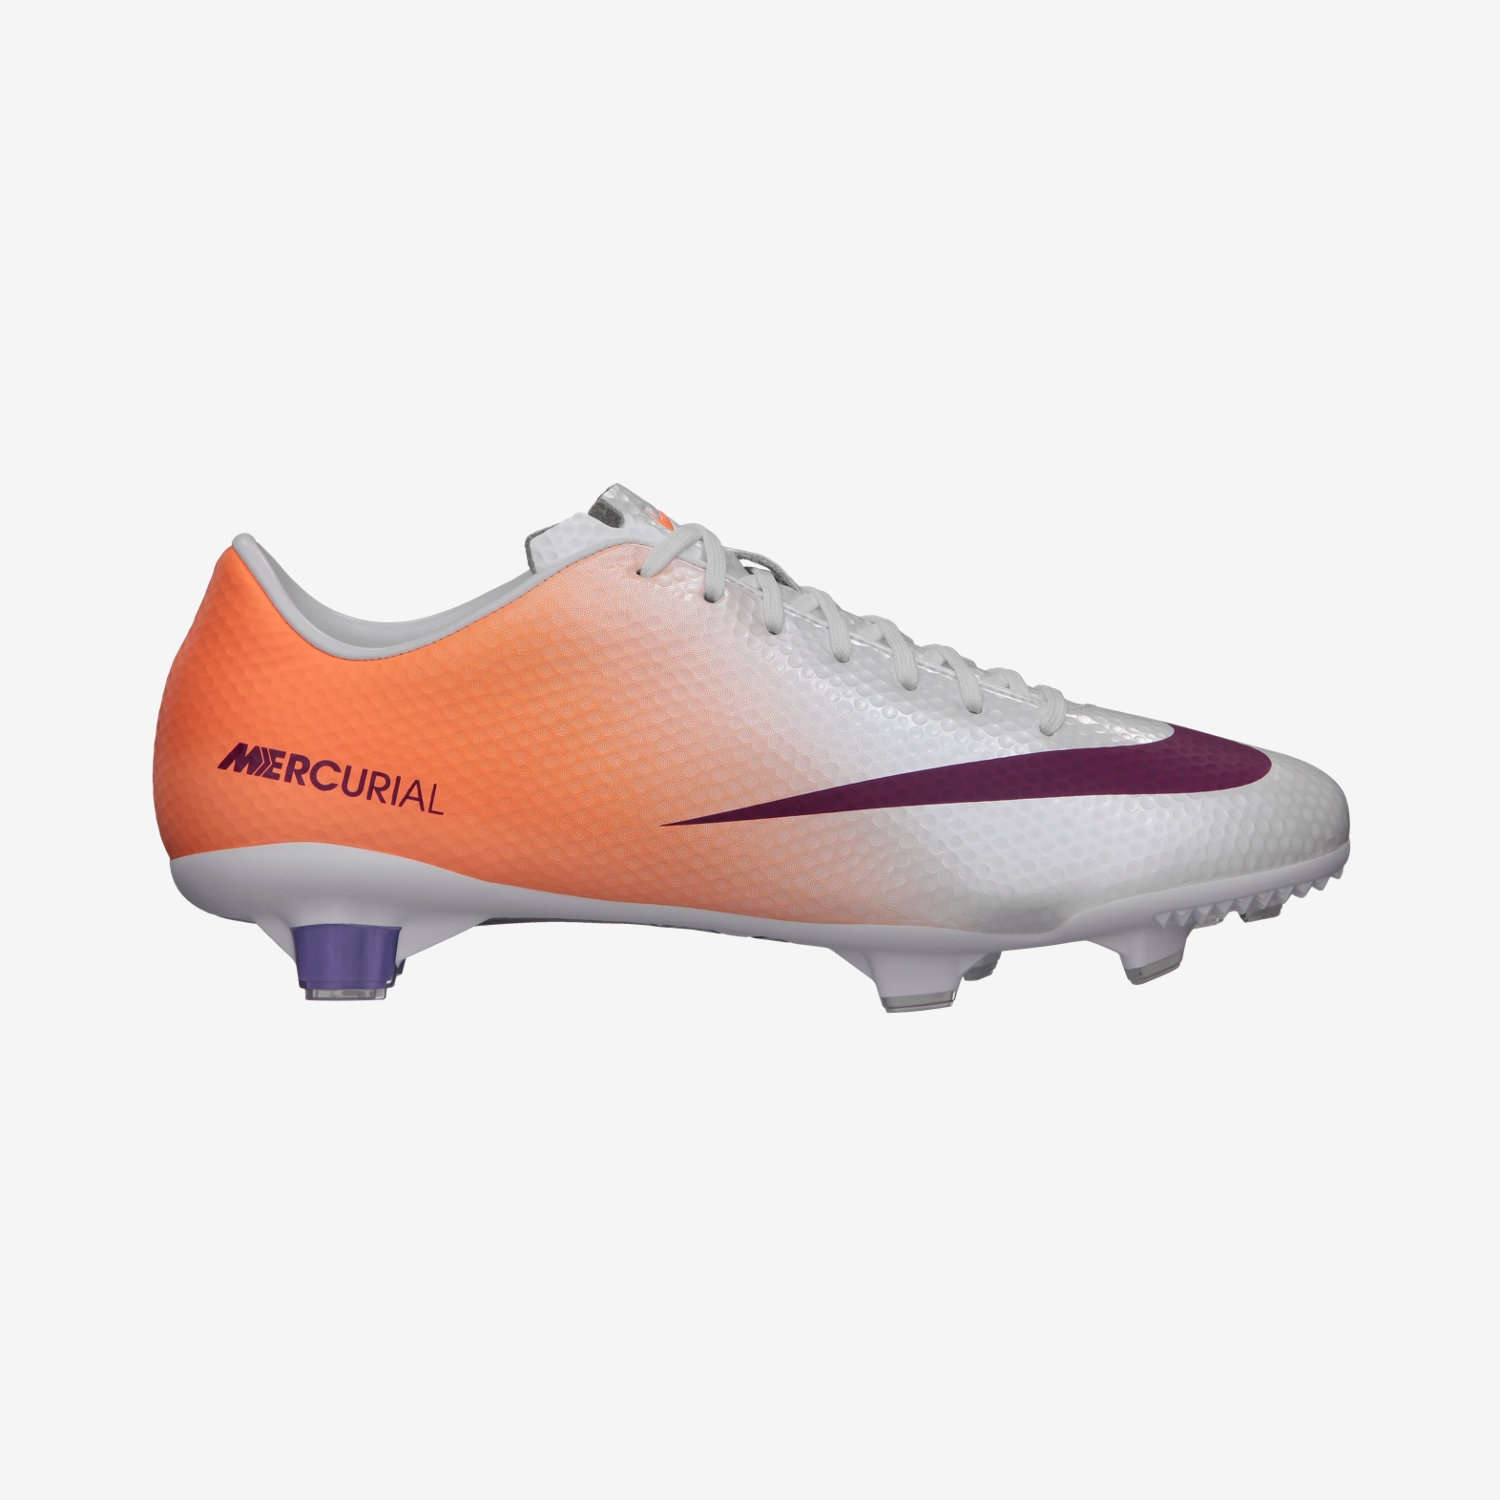 77a5b929ce0 ... for explosive acceleration and multi-directional gripFirm-ground (FG)  cleats for use on short-grass fields that may be slightly wet but rarely  muddy